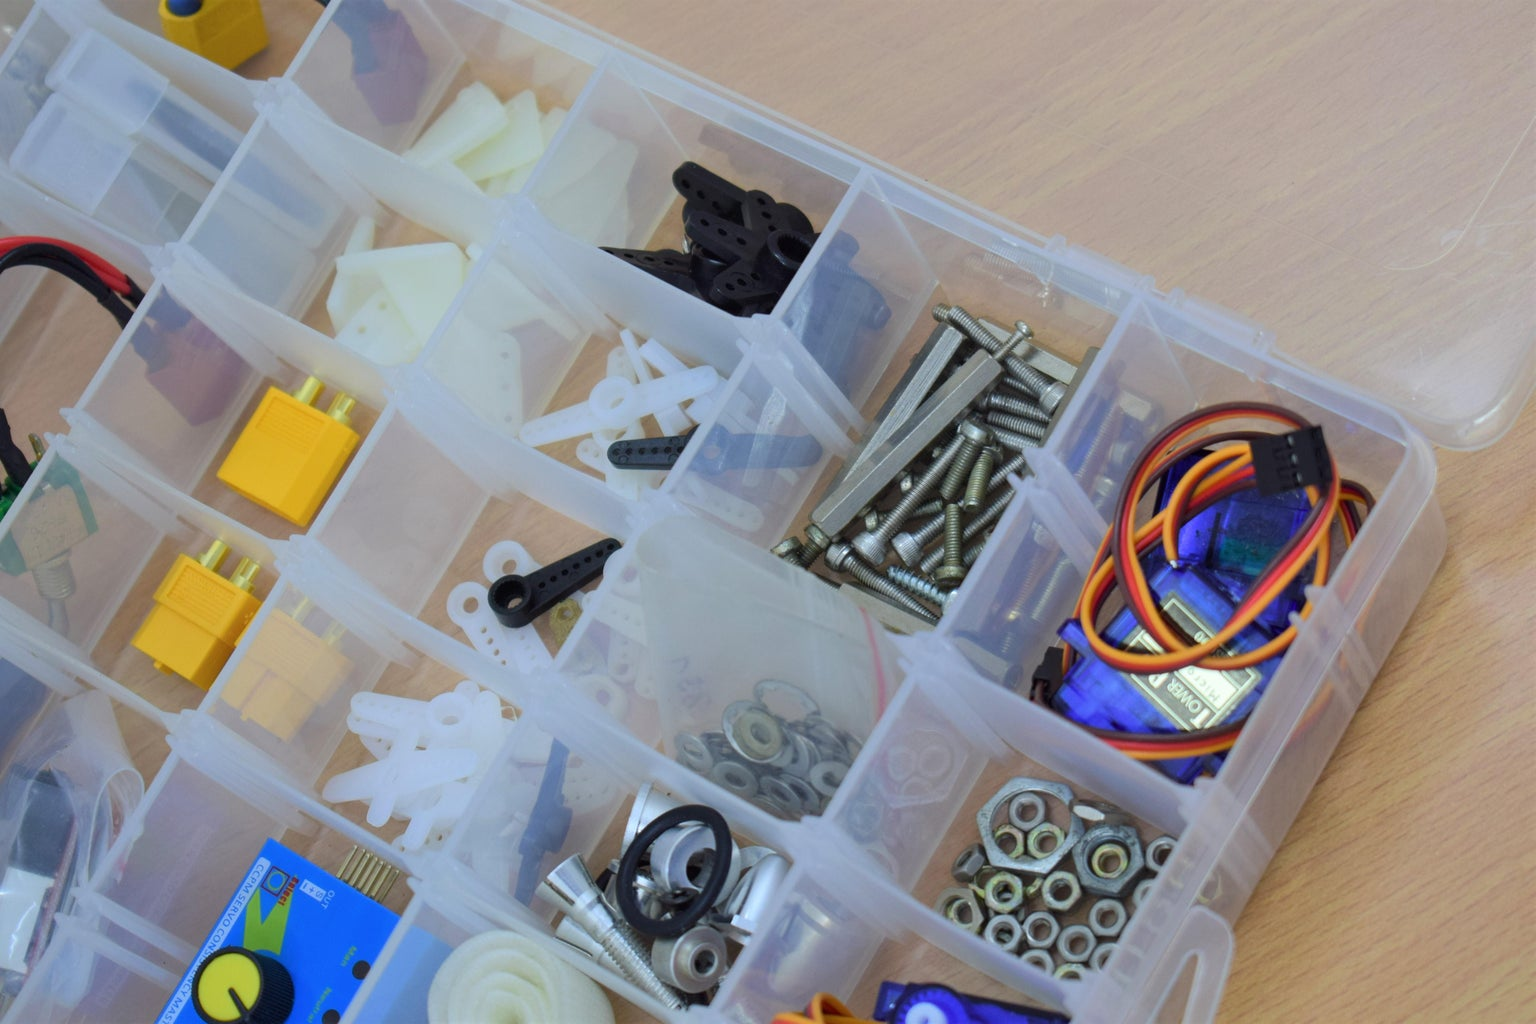 THE BUILDING MATERIALS, FASTENERS AND ADHESIVES